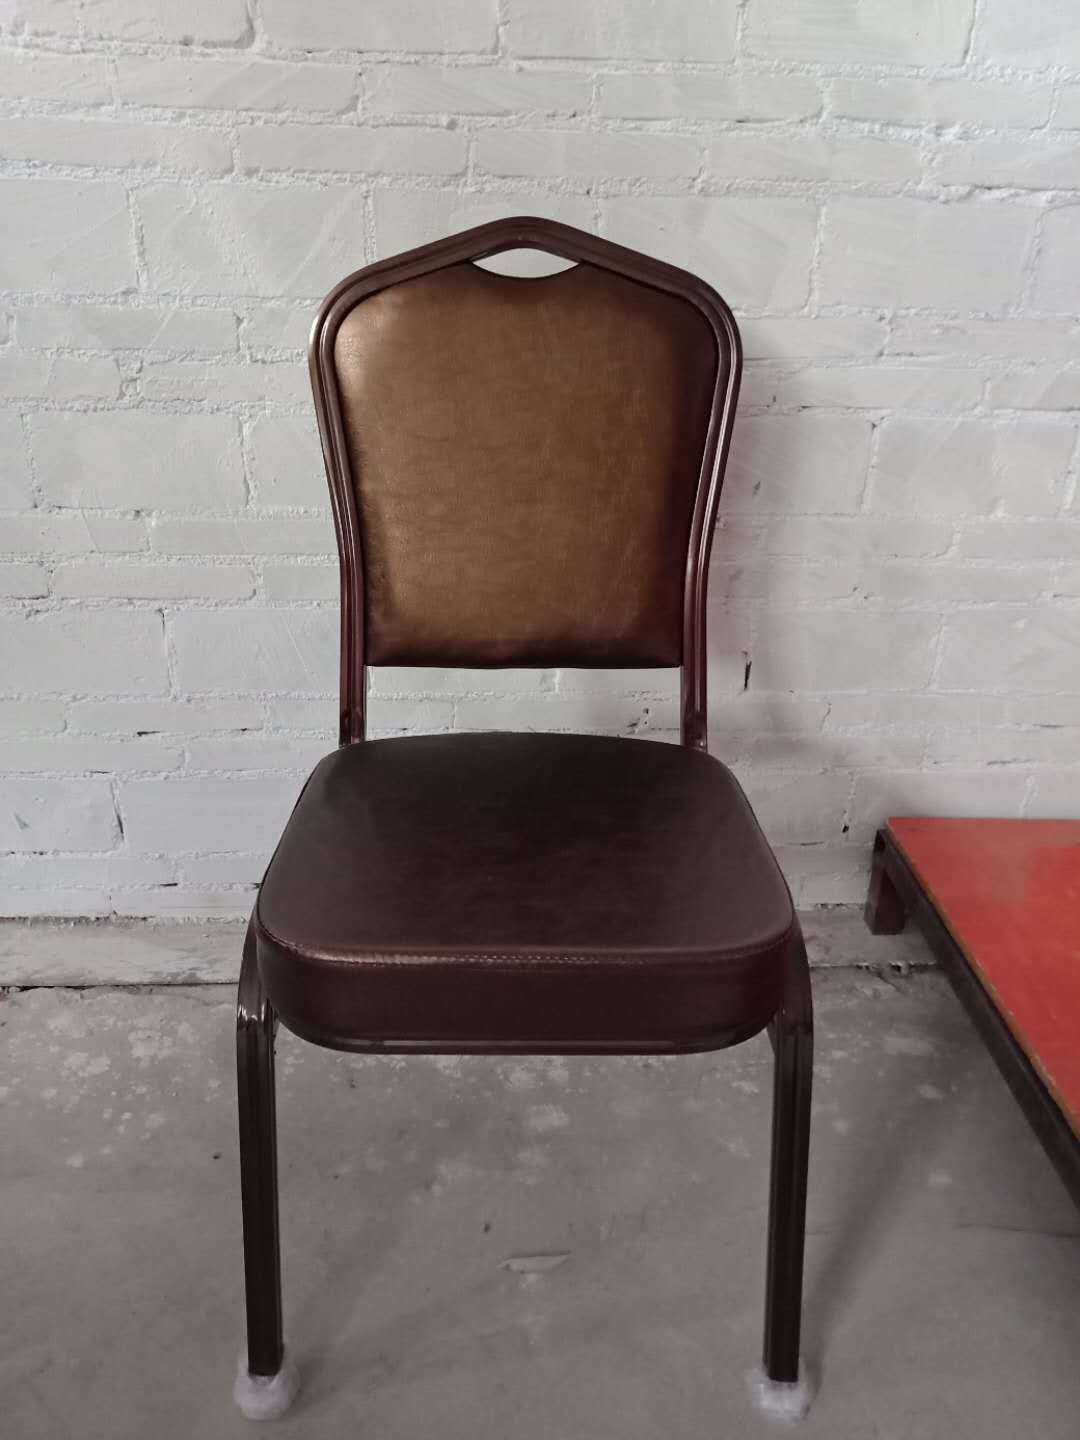 Used Banquet Chairs Hot Item Fancy Dining Room Aluminium Banquet Hall Furniture Used For Stacking Banquet Chairs